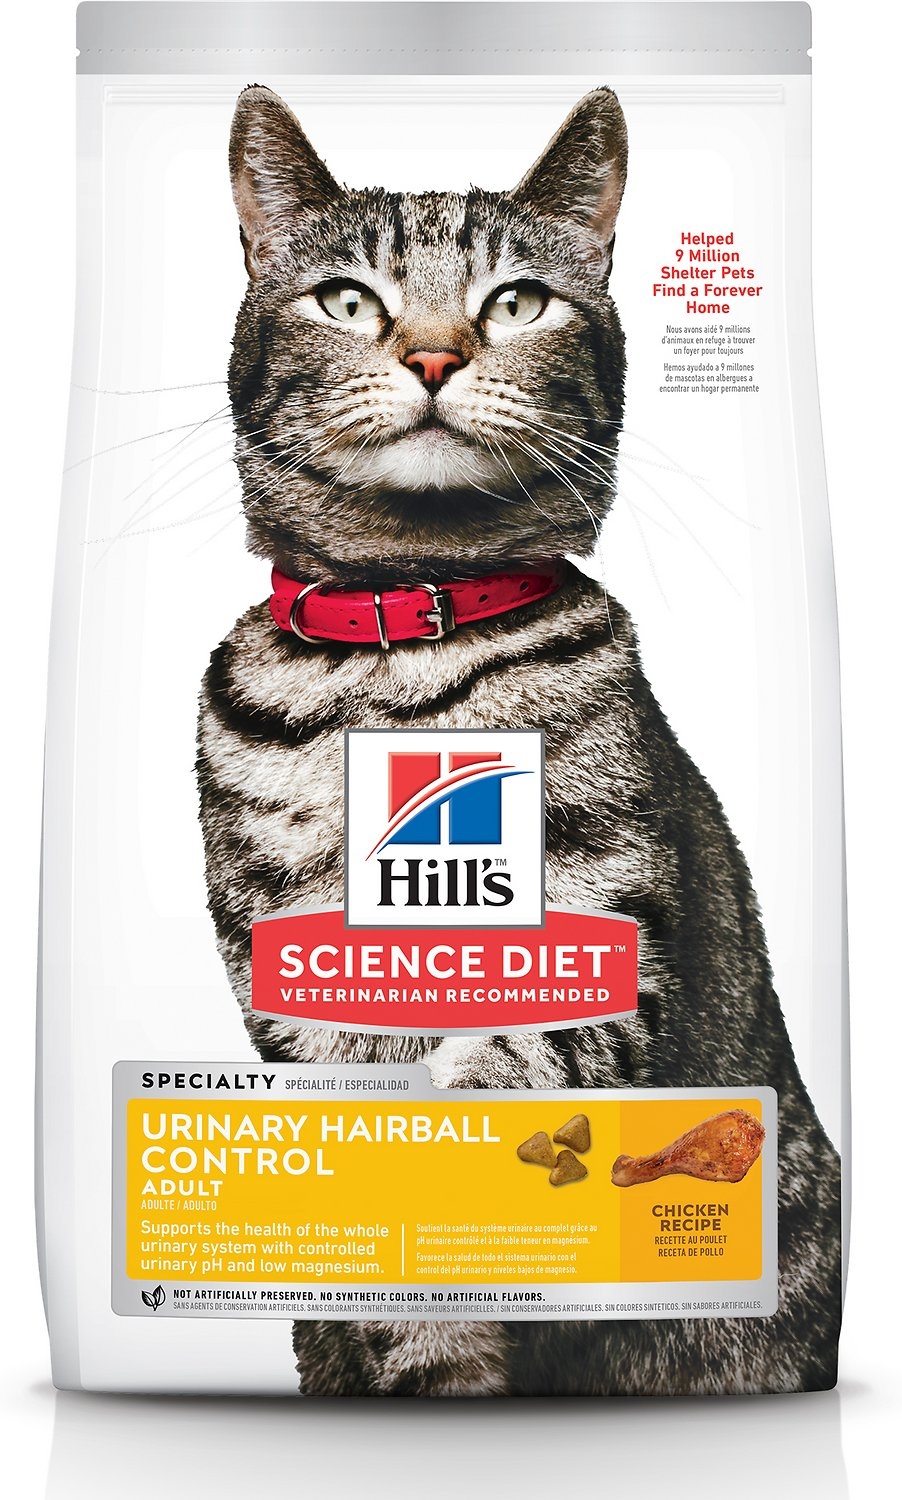 Is Canned Cat Food Better Than Dry